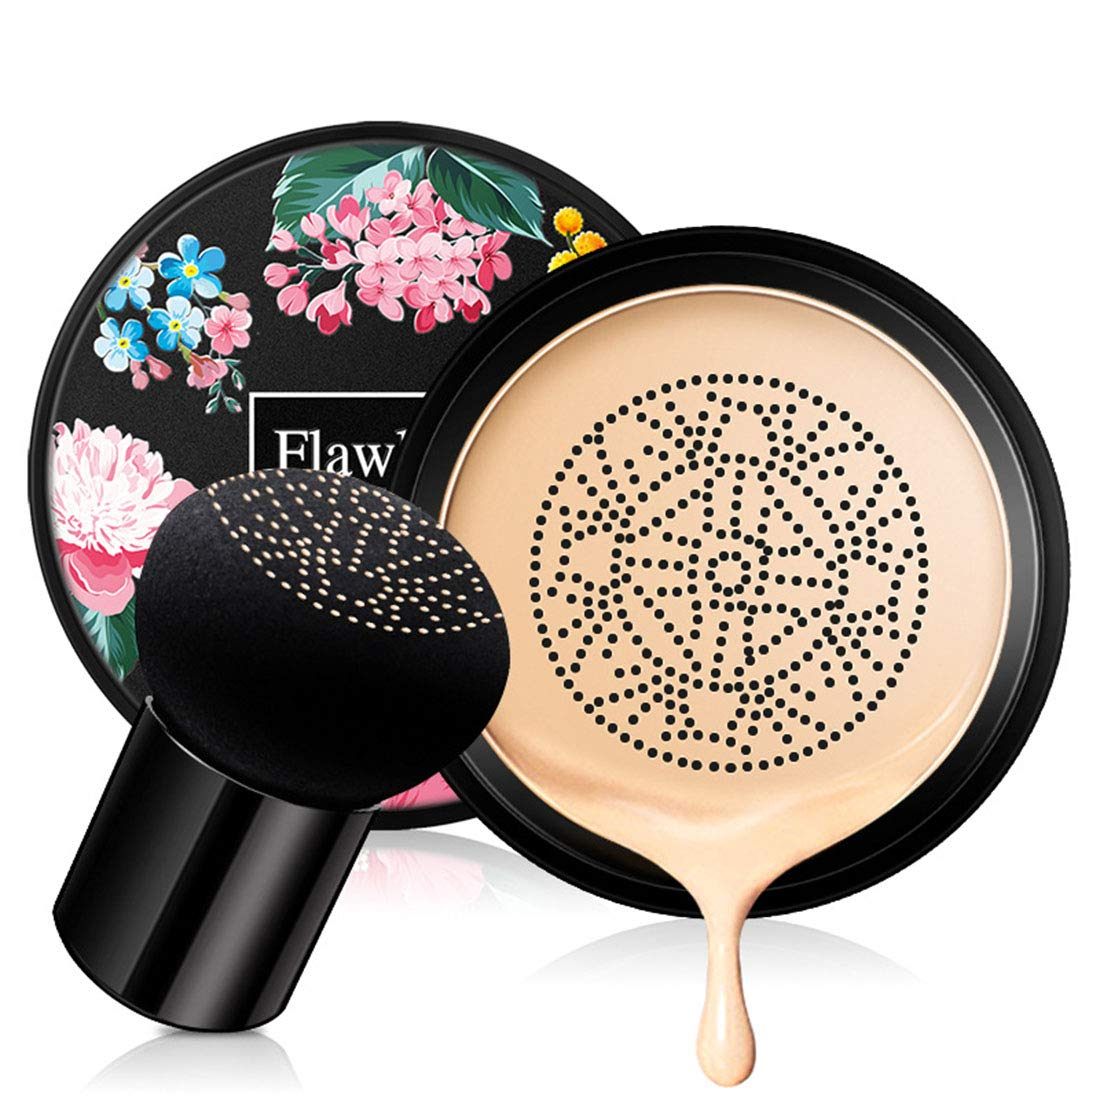 Mushroom Head Air Cushion CC Cream, Concealer Lasting Nude Makeup Moisturizing Brightening Pigment BB Liquid Foundation, Even Skin Tone Makeup Base Primer (Natural)